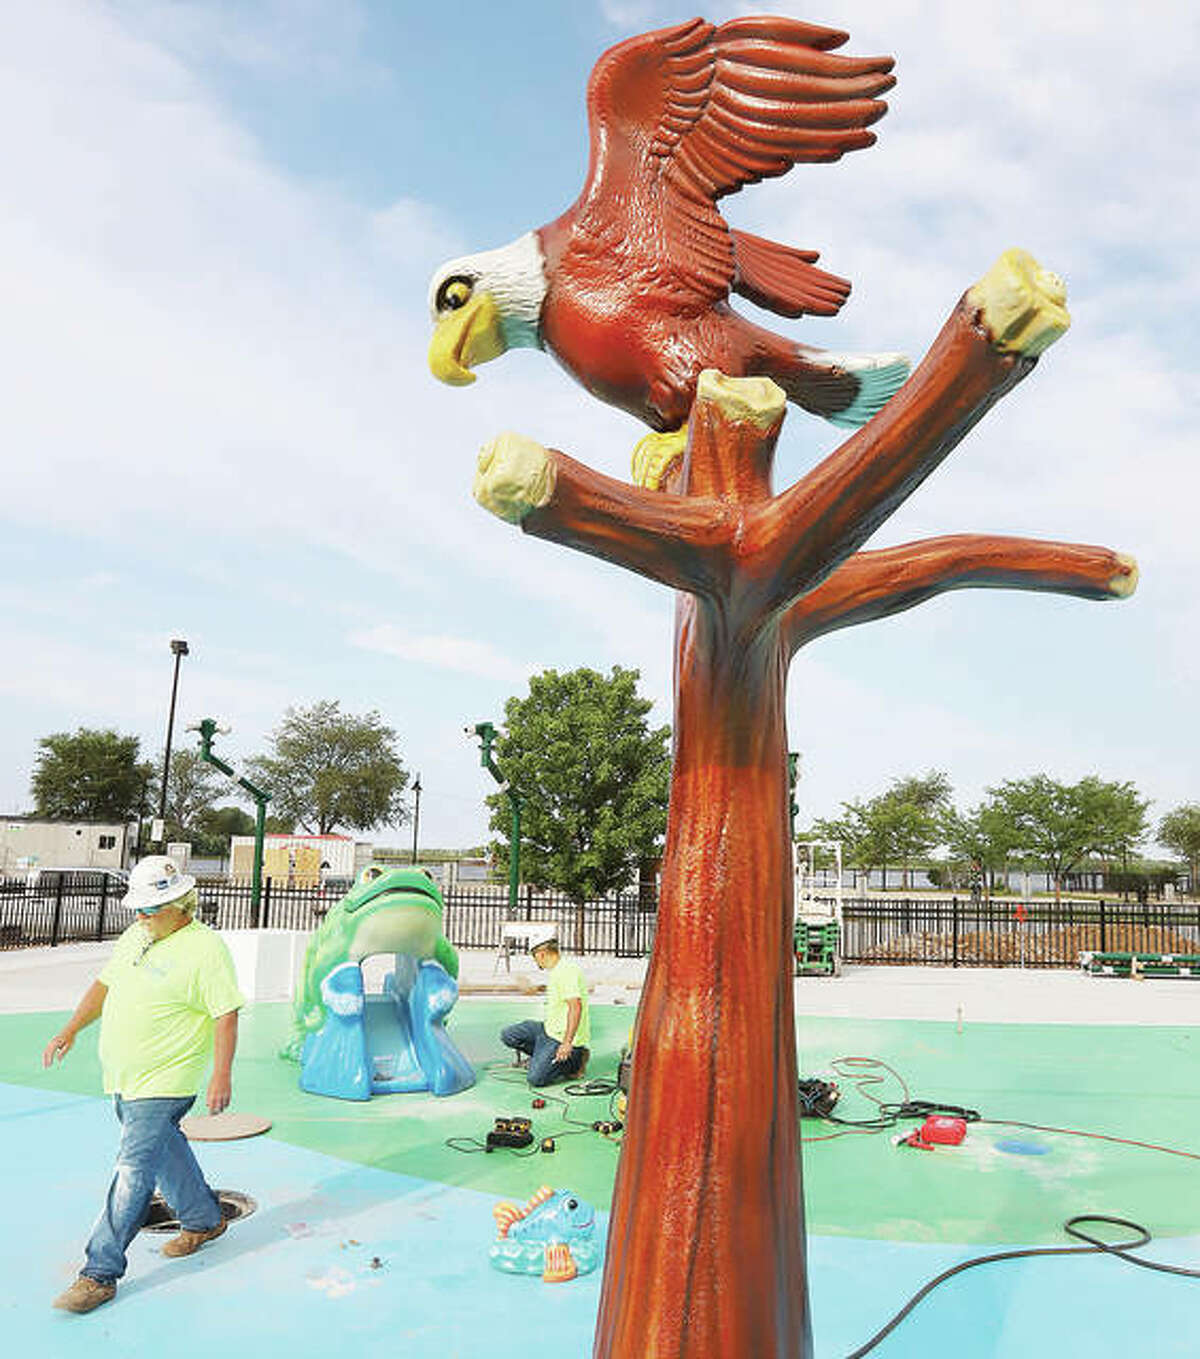 A ribbon cutting ceremony is planned at 2 p.m. Friday at the new Alton Splash Pad at Riverfront Park. The attraction will open to the public at 10 a.m. Saturday.